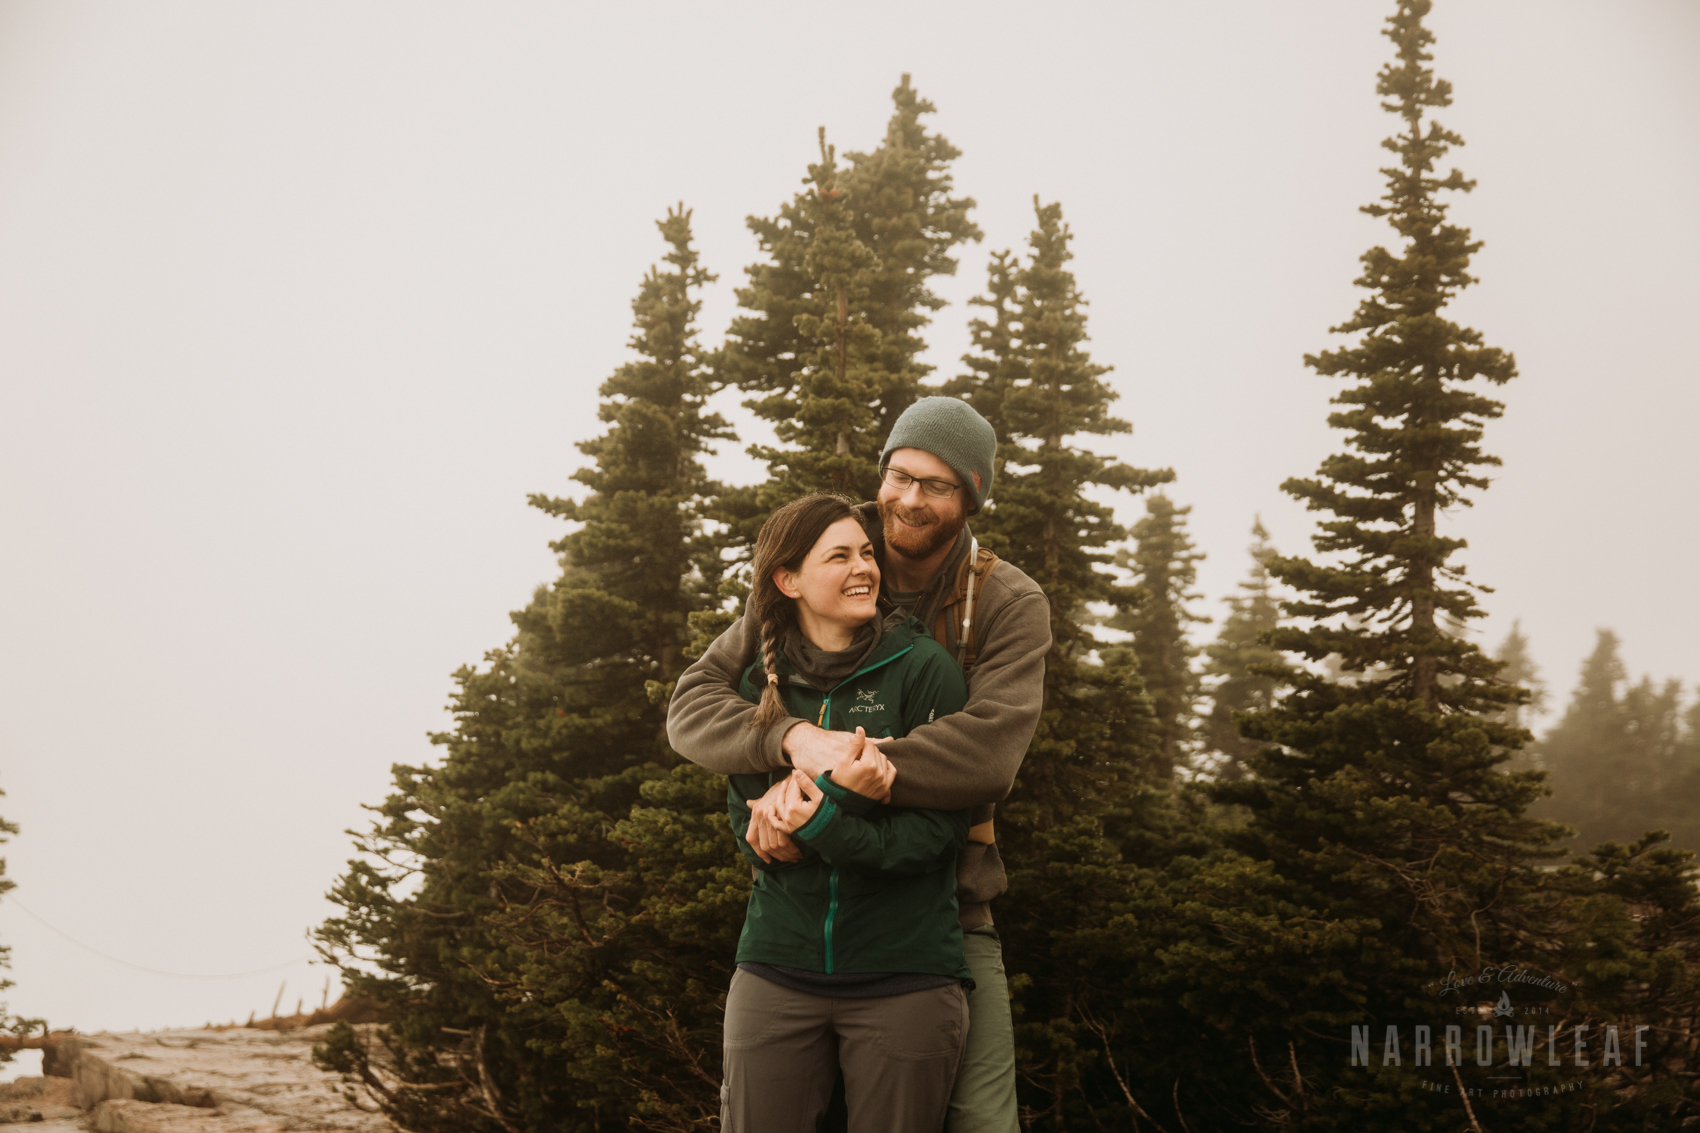 logan-pass-montana-glacier-national-park-mountain-hiking-engagement-session-Narrowleaf_Love_and_Adventure_Photography-0752.jpg